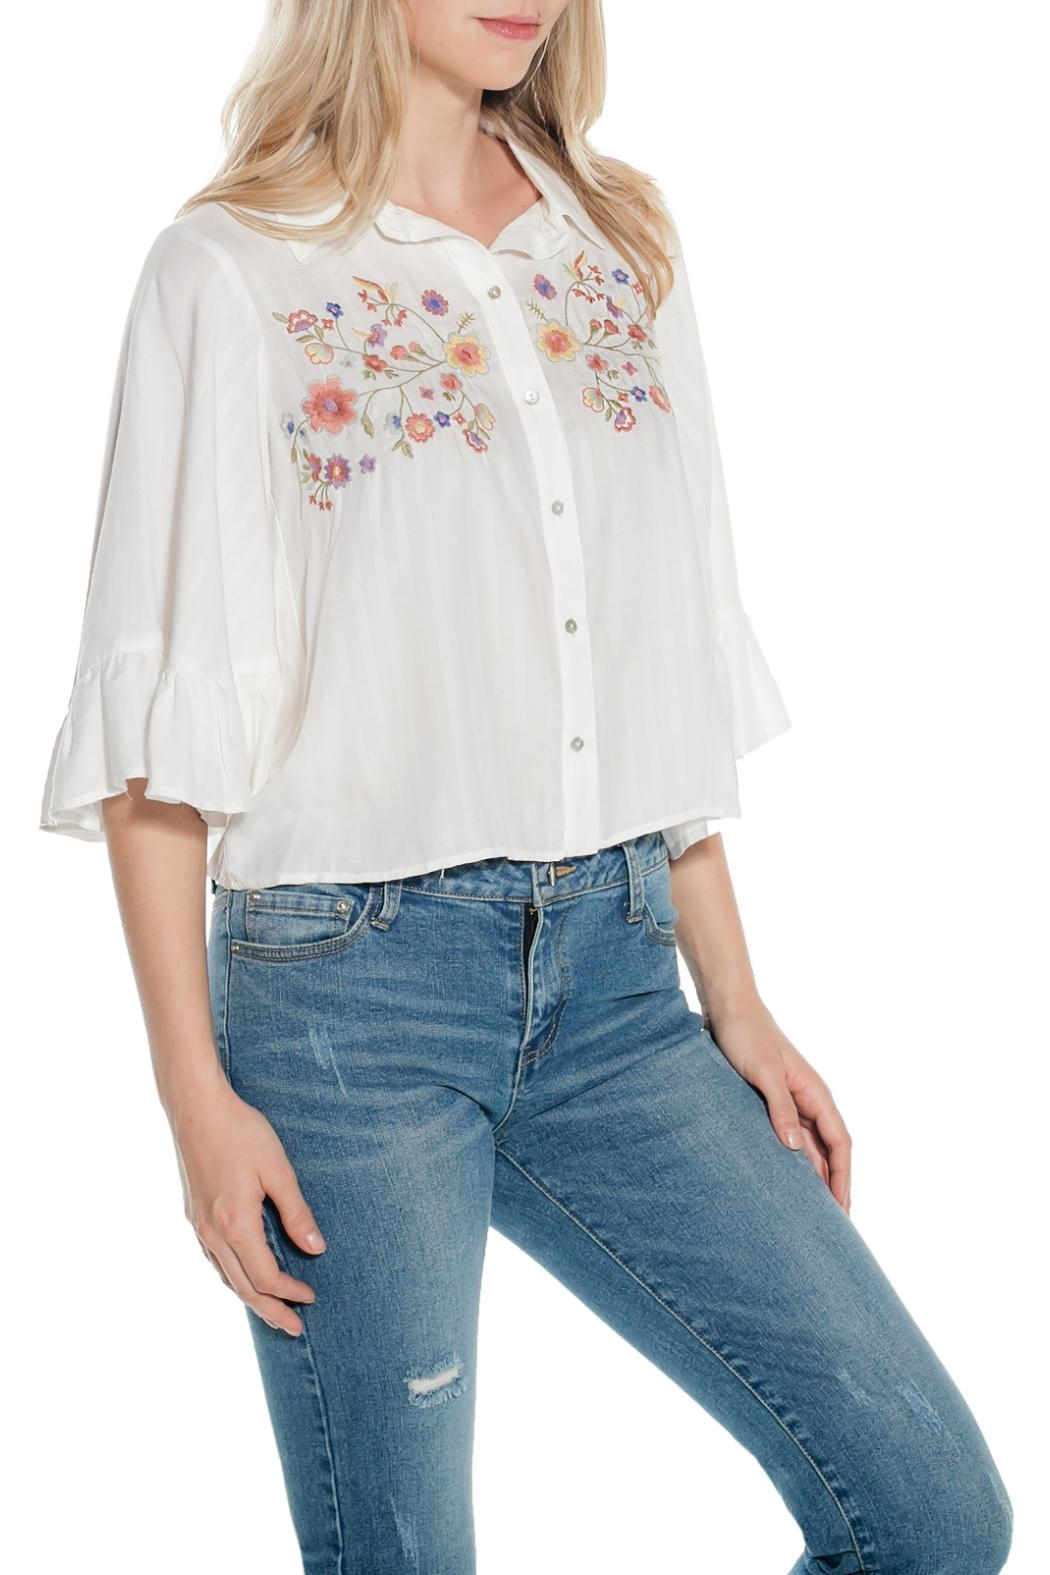 Taylor & Sage Shadow Stripe Blouse - Front Full Image